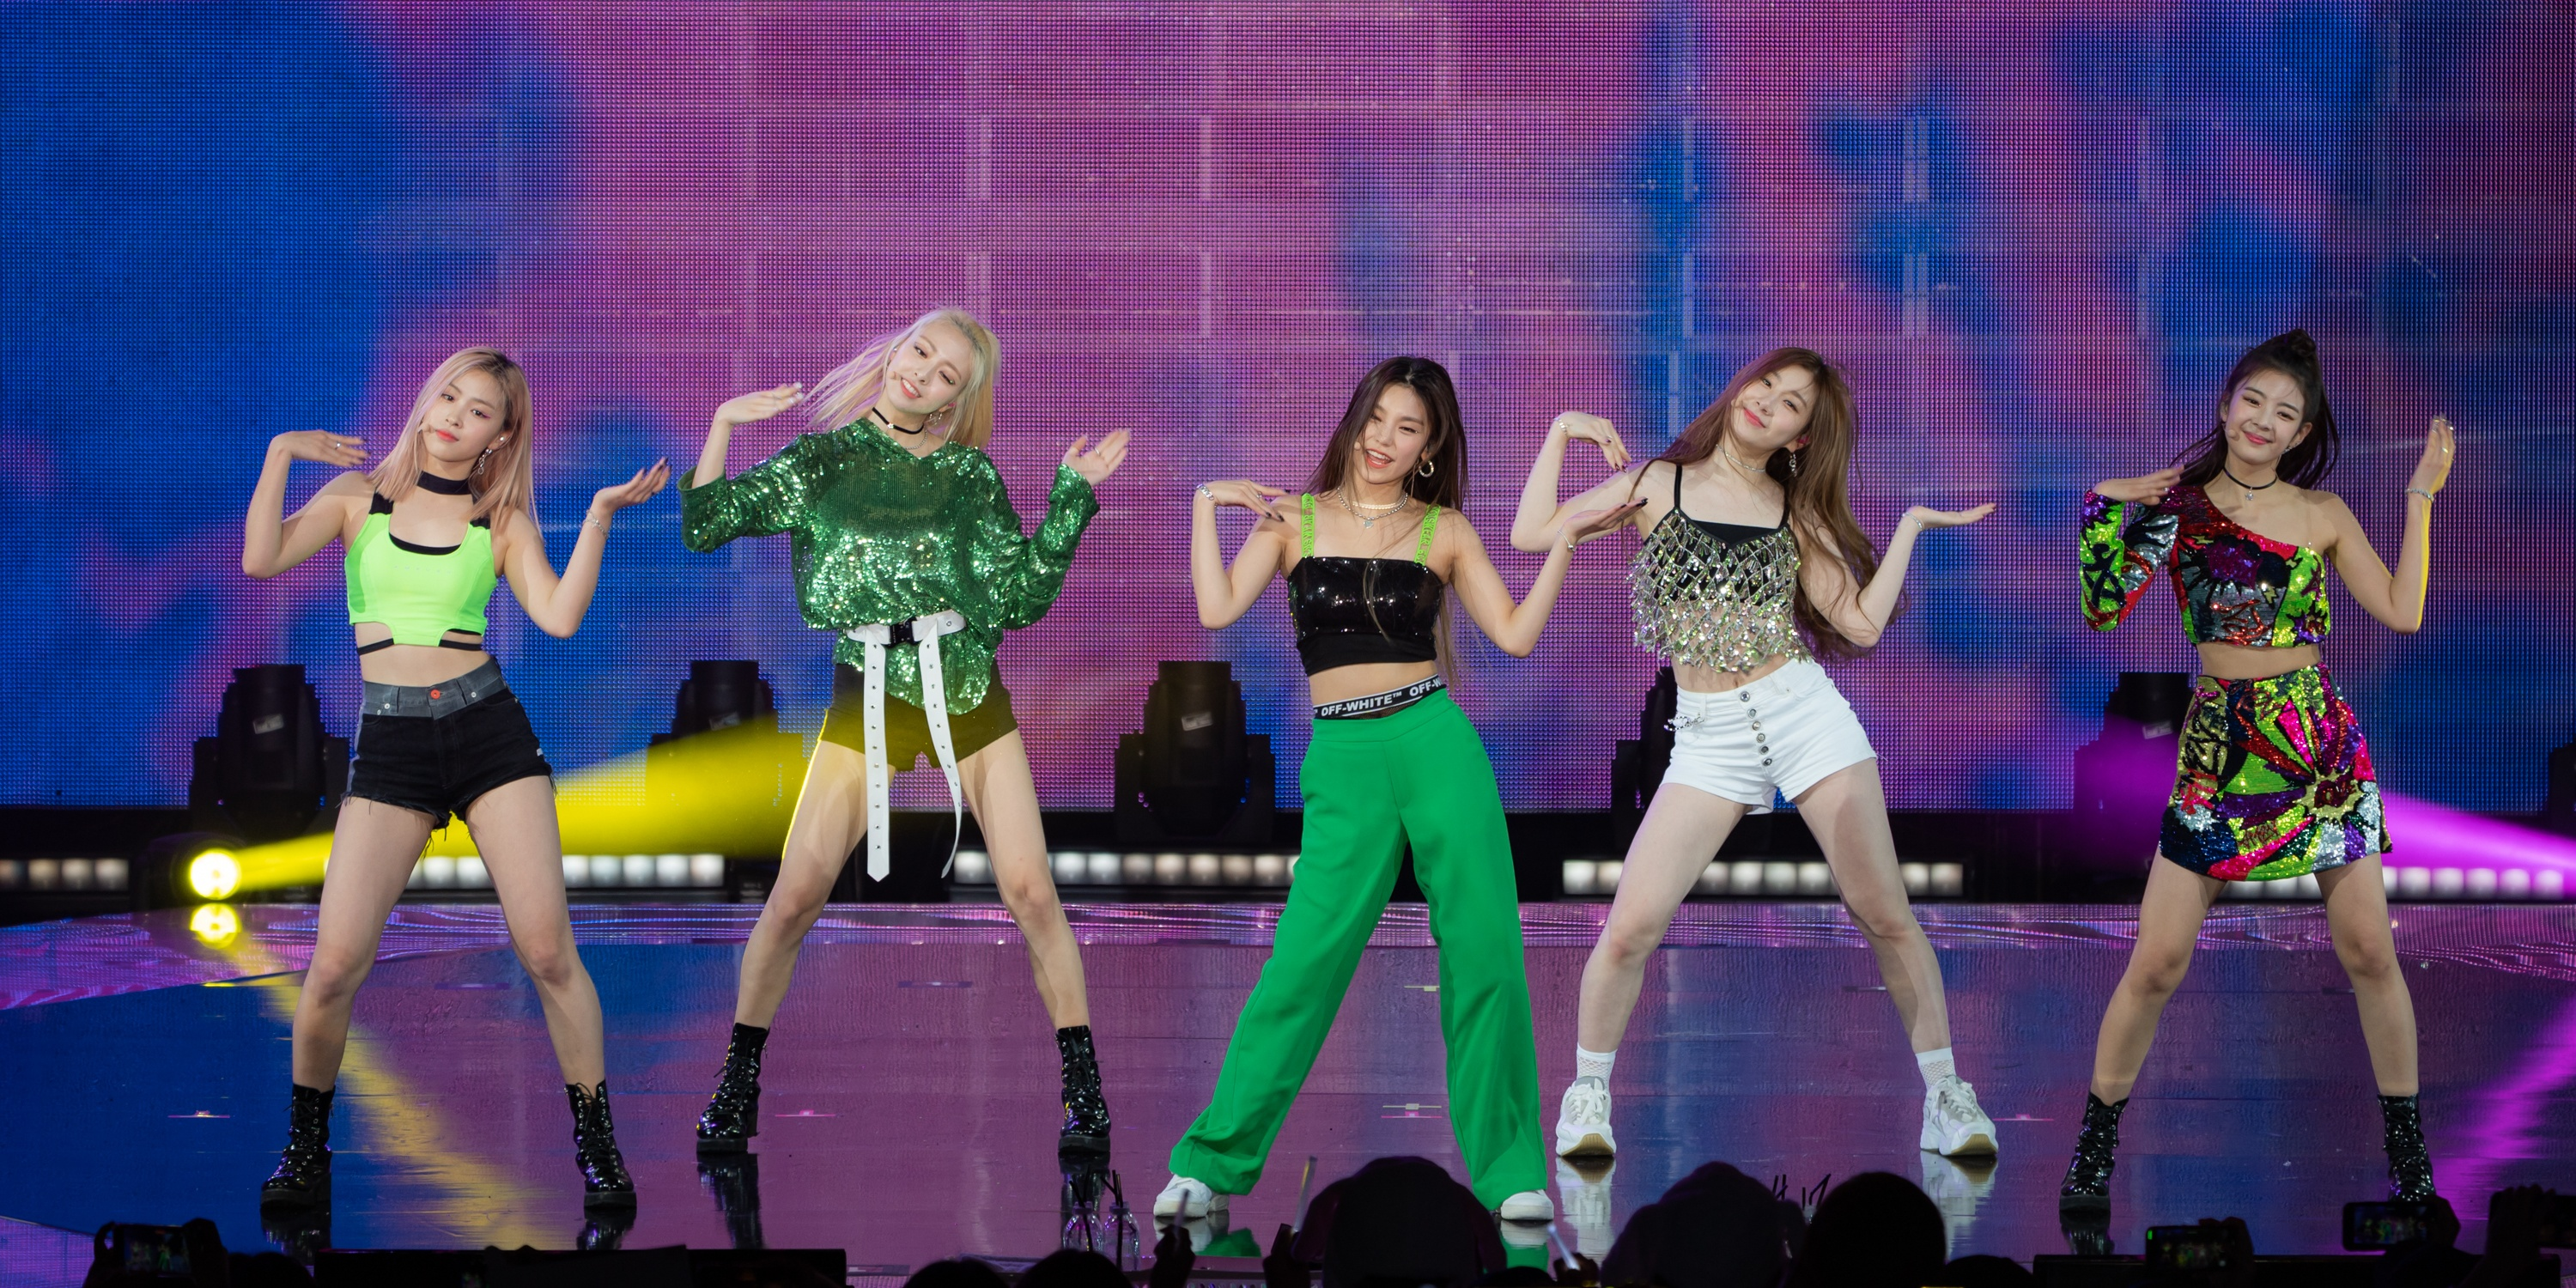 ITZY soars in debut Singapore showcase – gig report